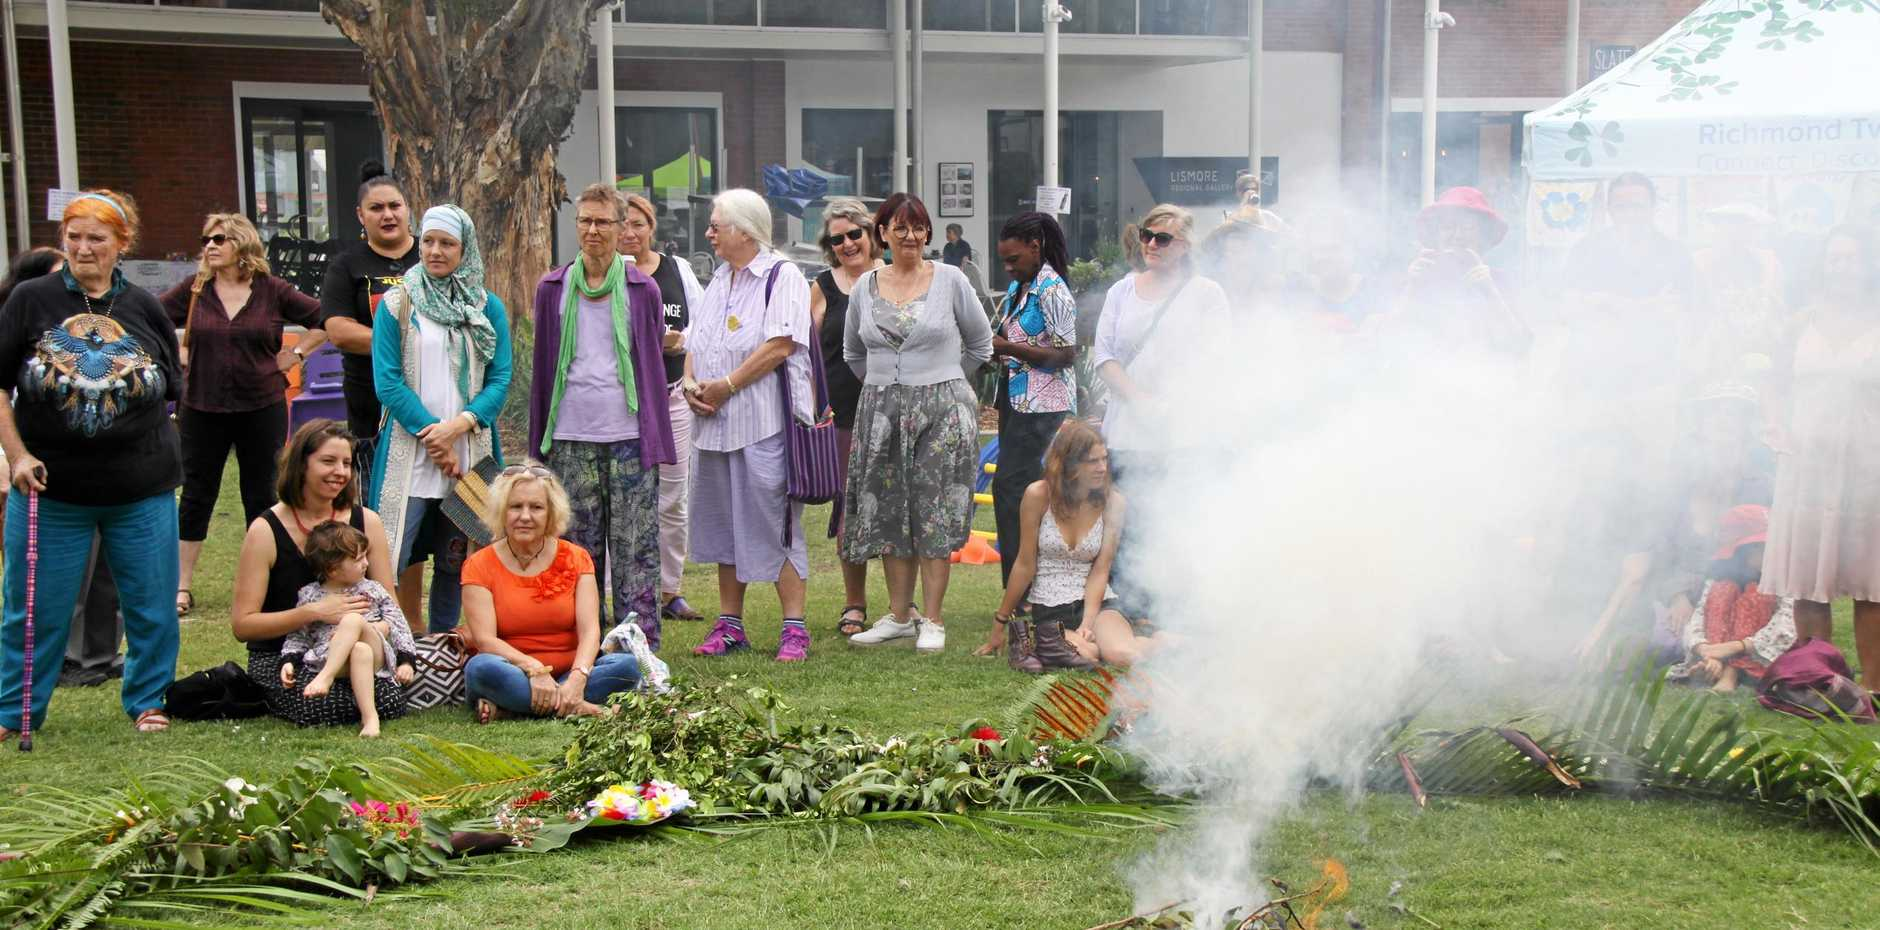 LISMORE WOMEN'S FESTIVAL: Around 100 people attended the opening of the LWF at the Quad on Saturday morning which included a Welcome to County, where everyone was invited to place a flower or foliage on the fire in memory of someone special..